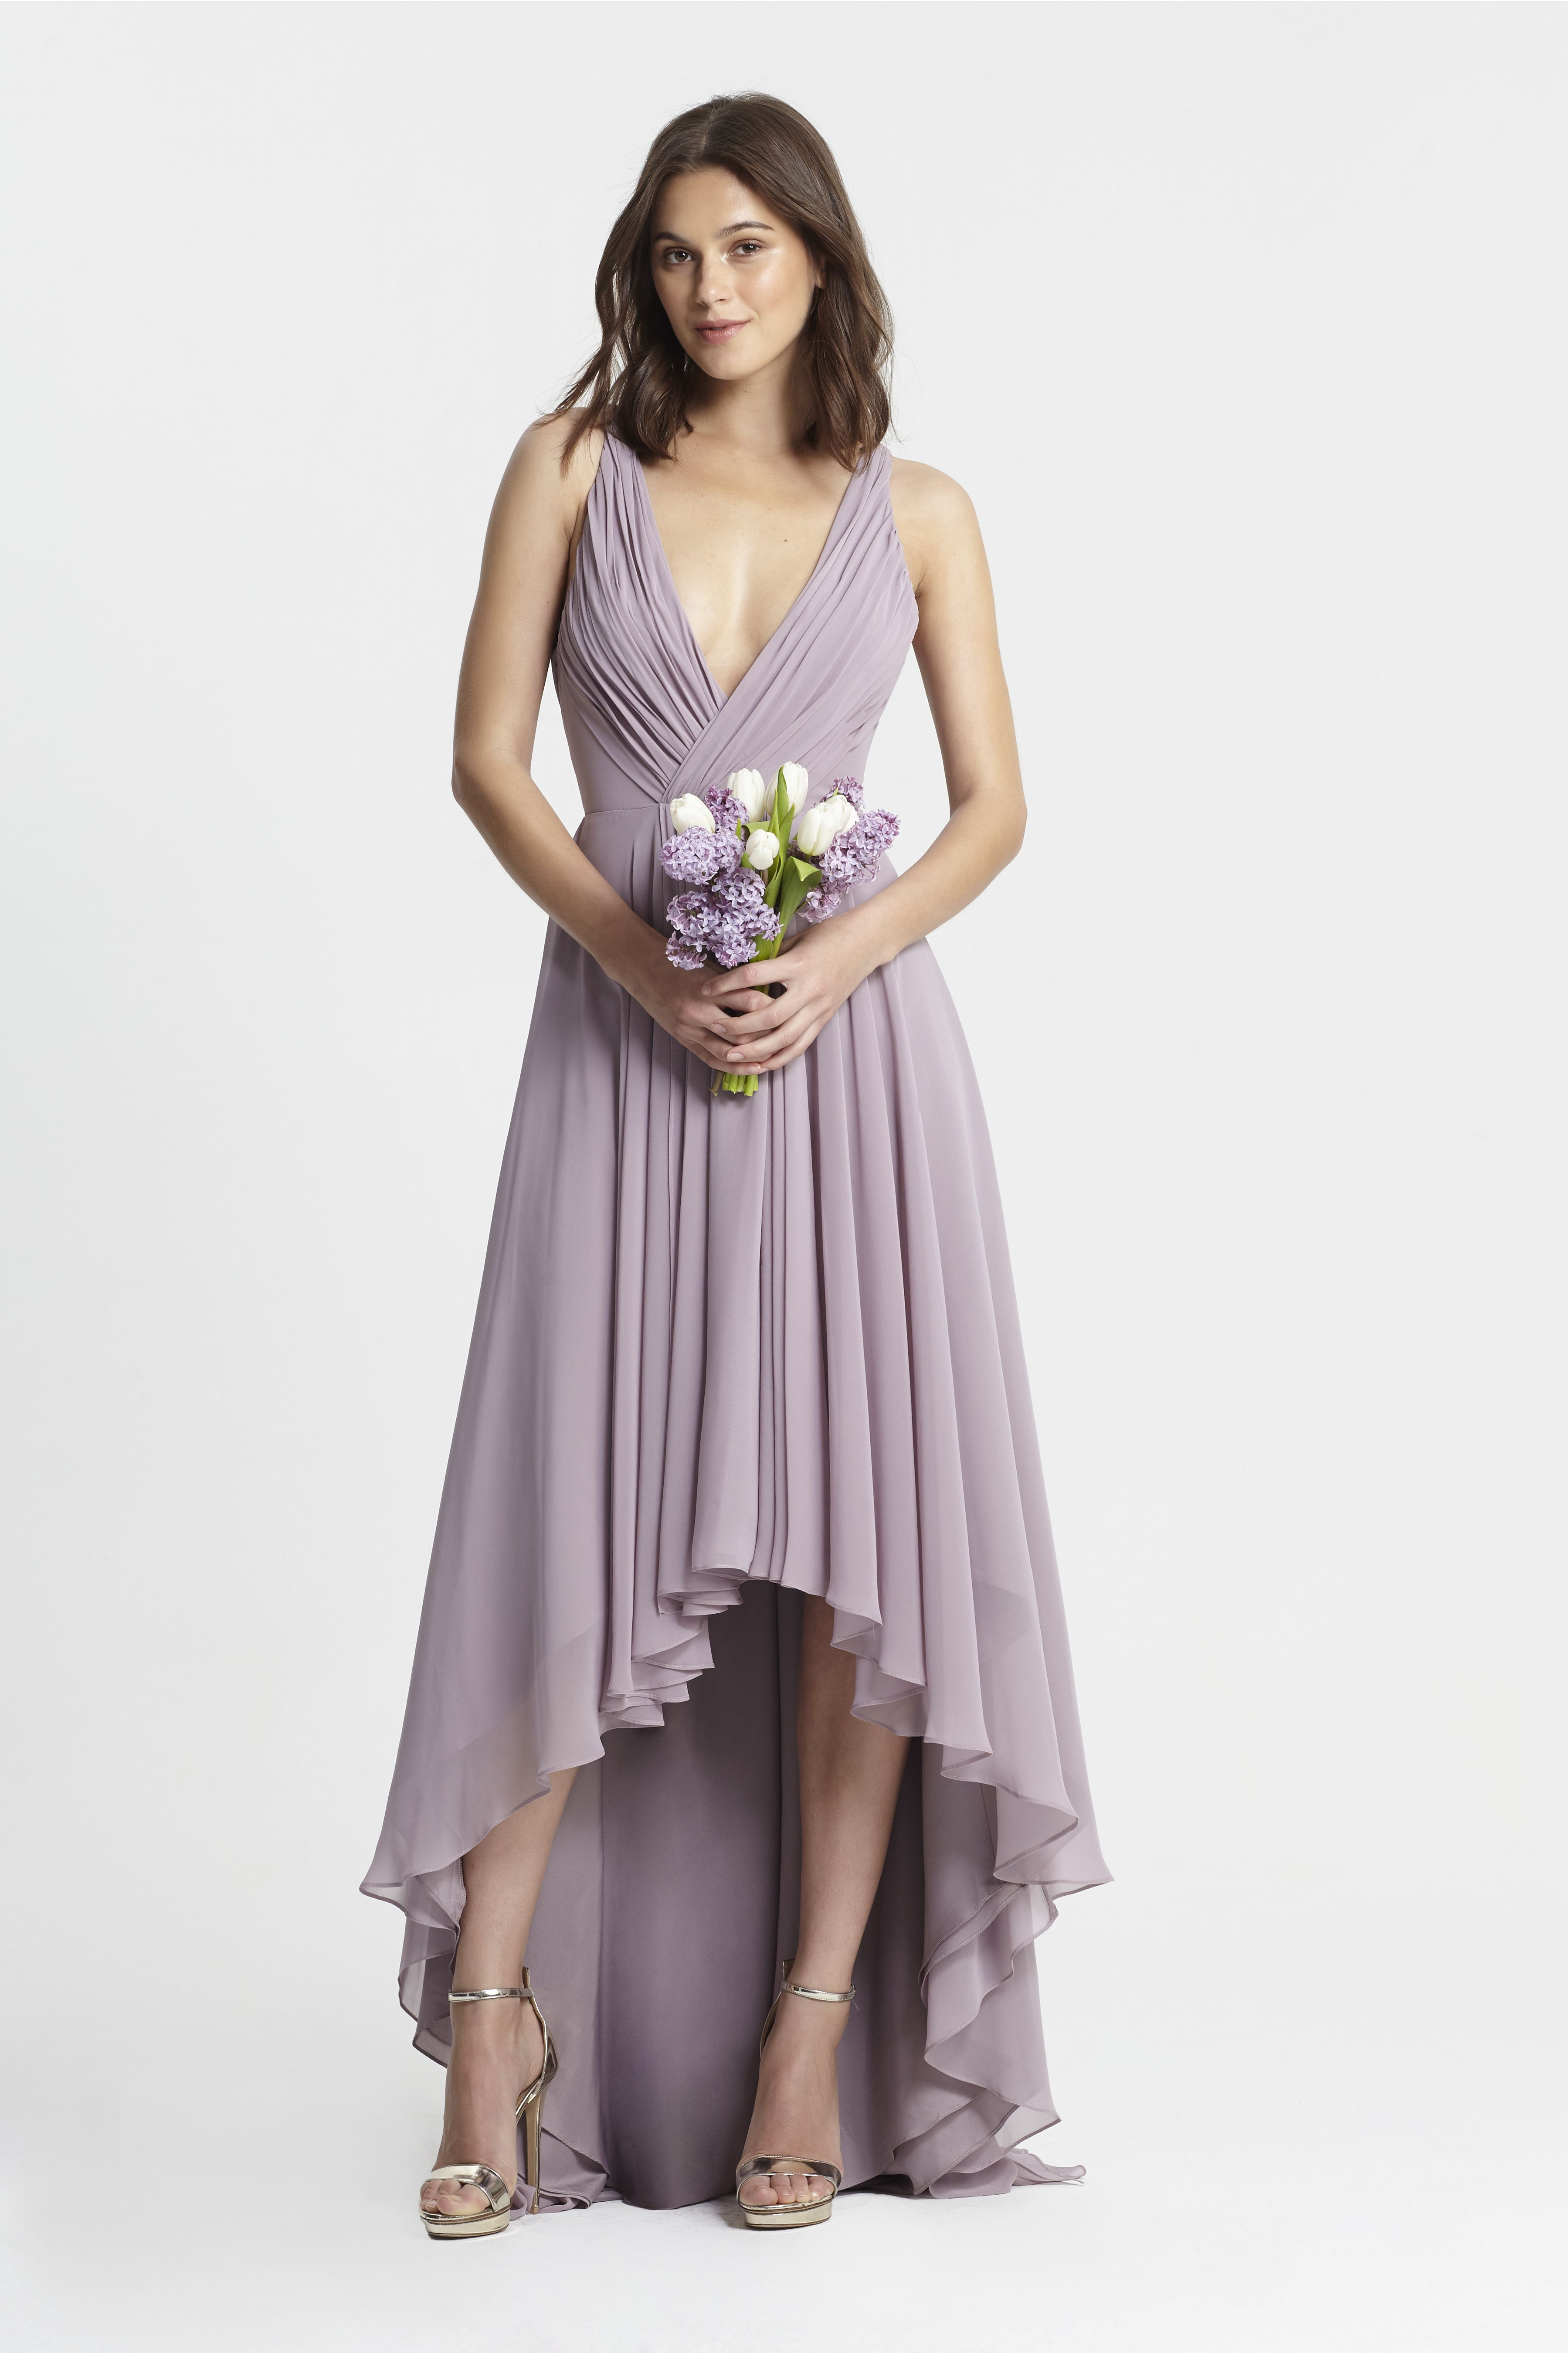 Monique lhuillier spring 2017 bridesmaids style 450378 lilac cheap name brand bridesmaid dresses ombrellifo Images